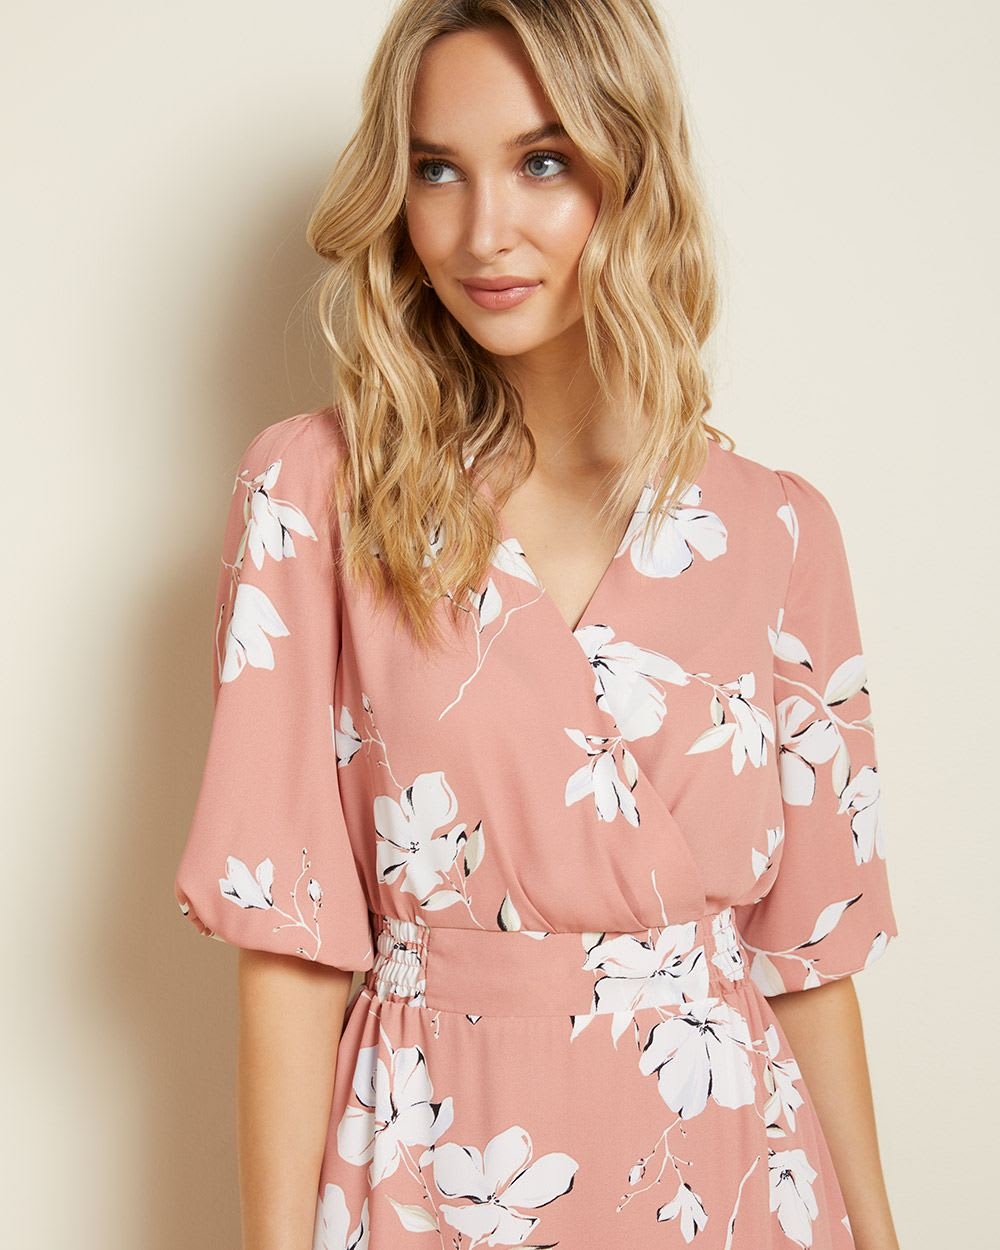 Silky Crepe elbow sleeve Fit and Flare dress